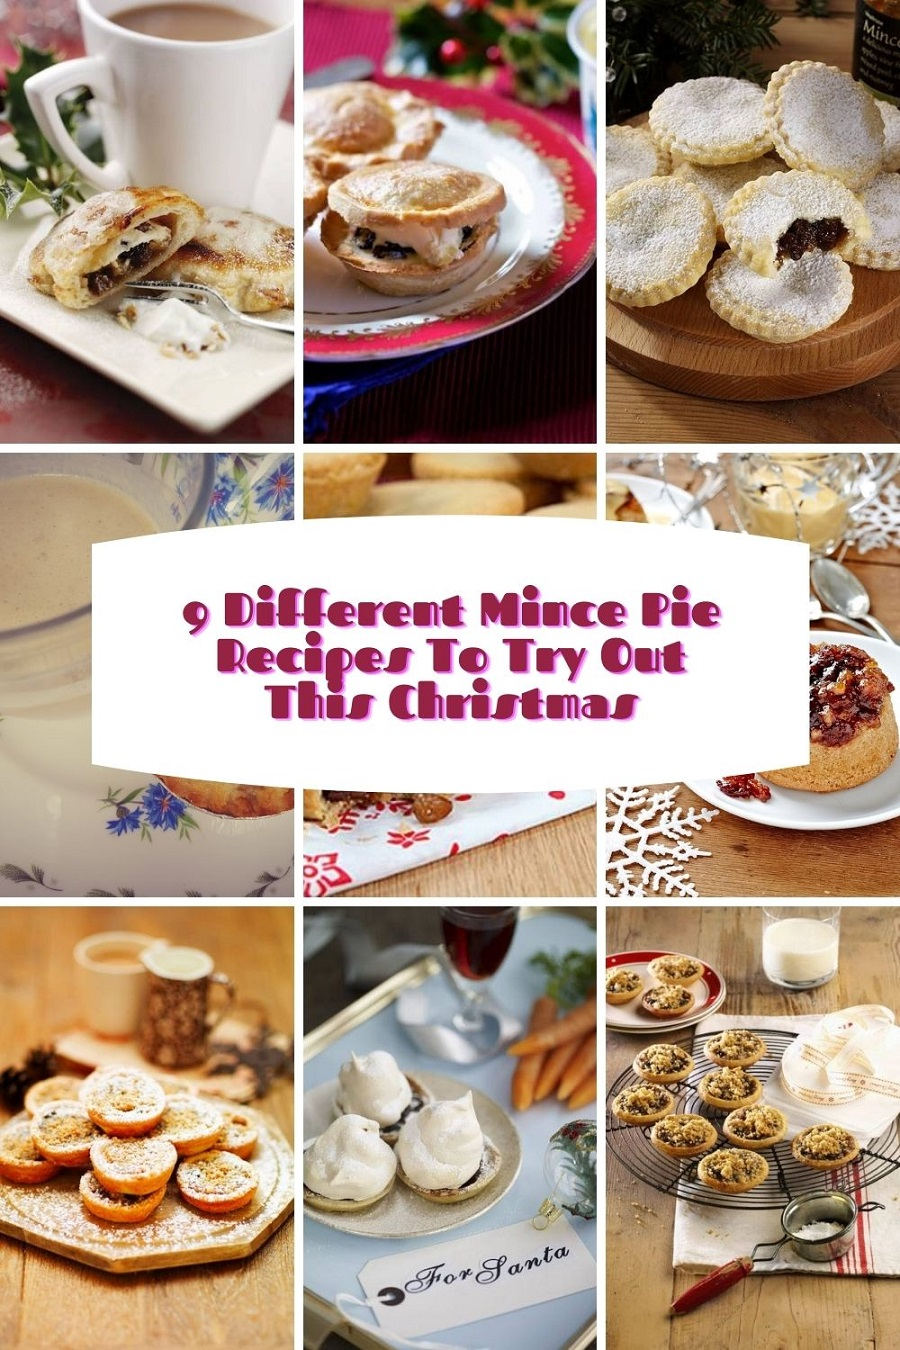 9 Different Mince Pie Recipes To Try Out This Christmas